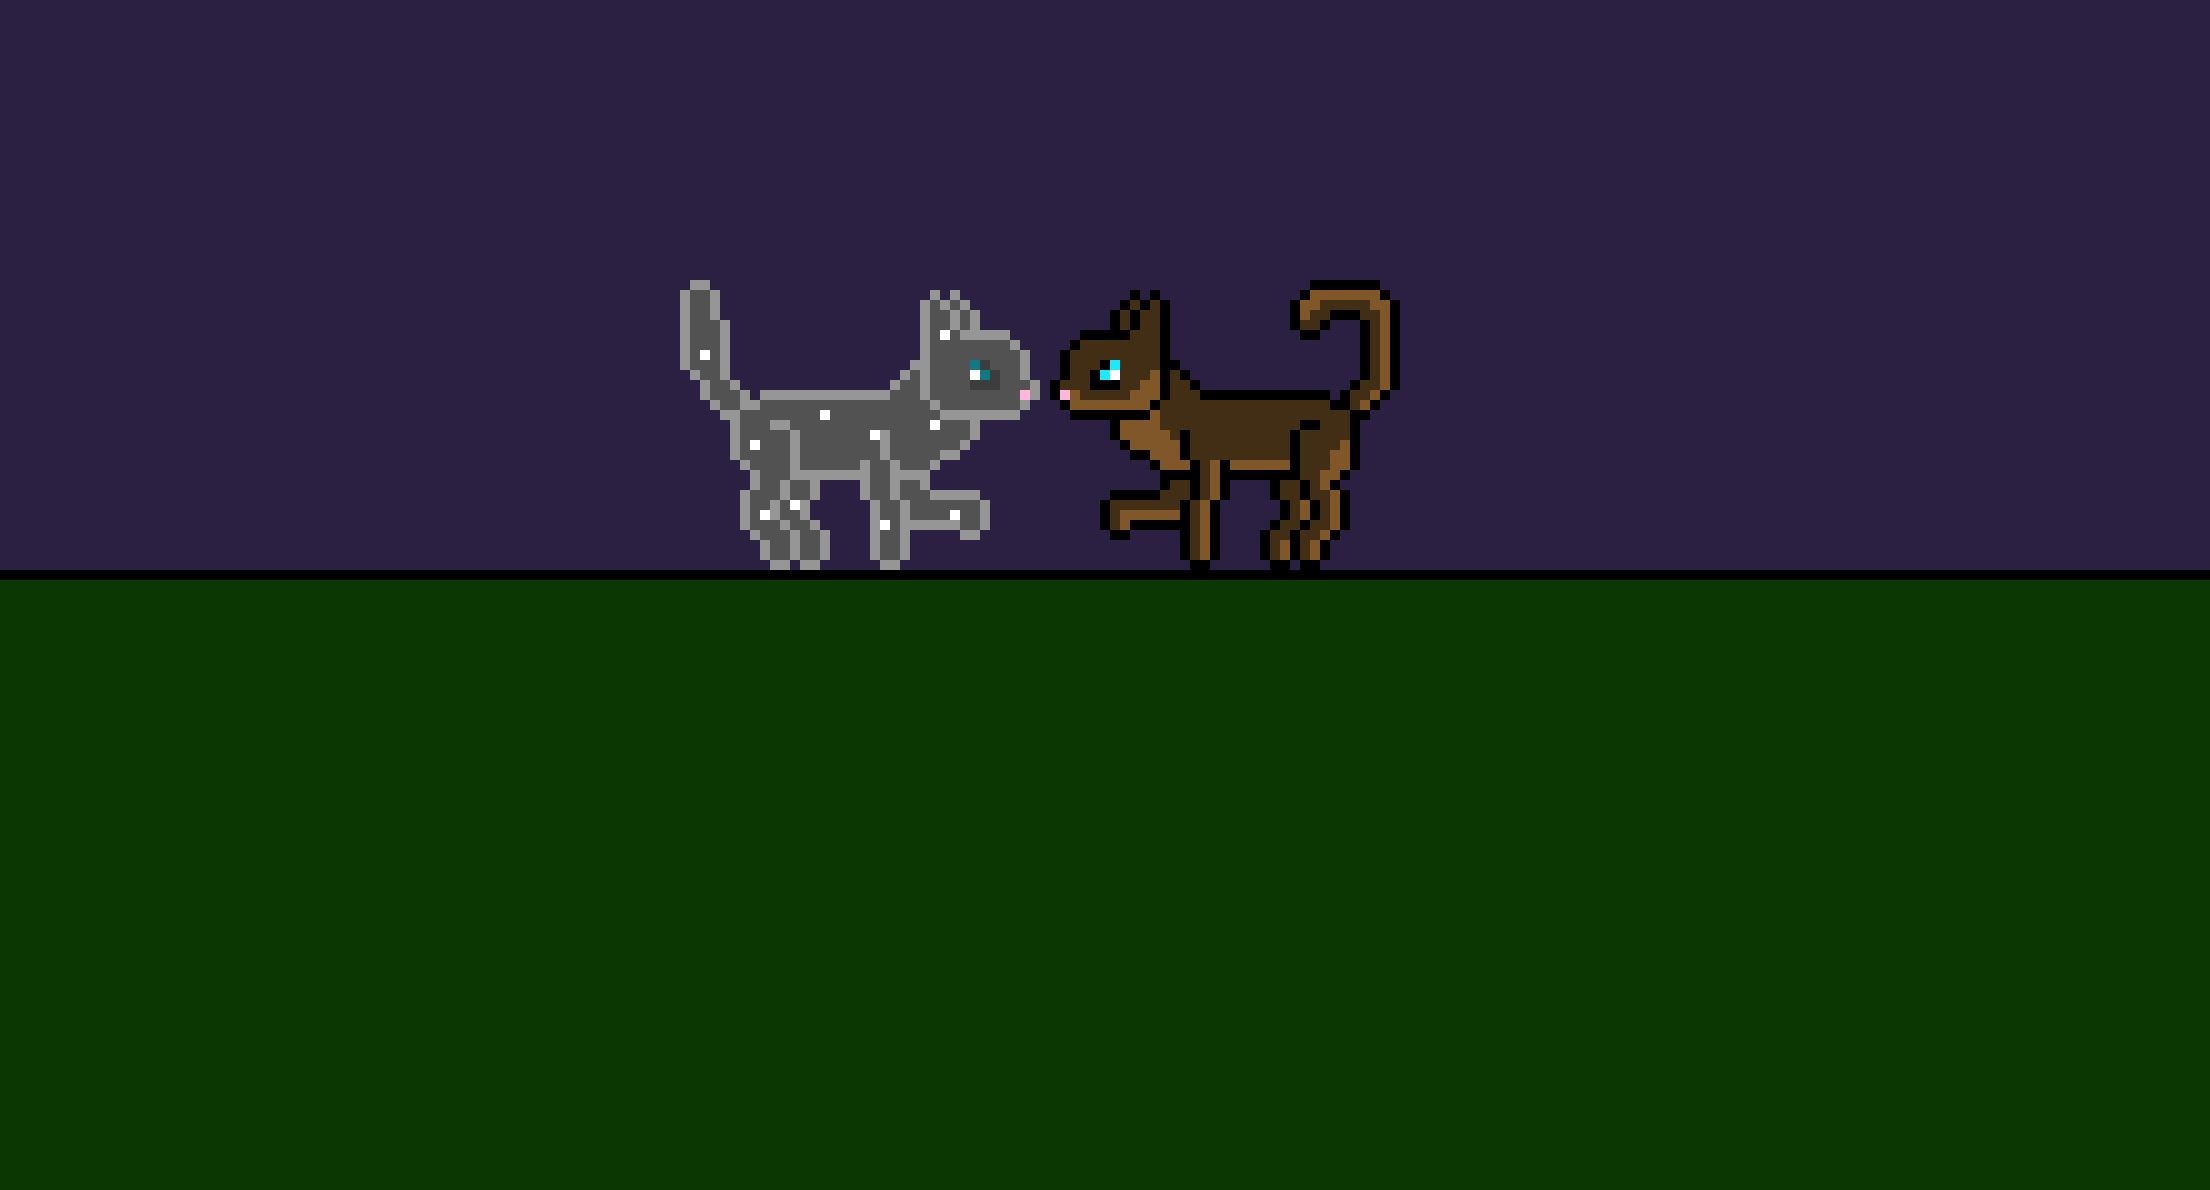 Warrior Cats) Woodstar and (StarClan warrior) Mistfur